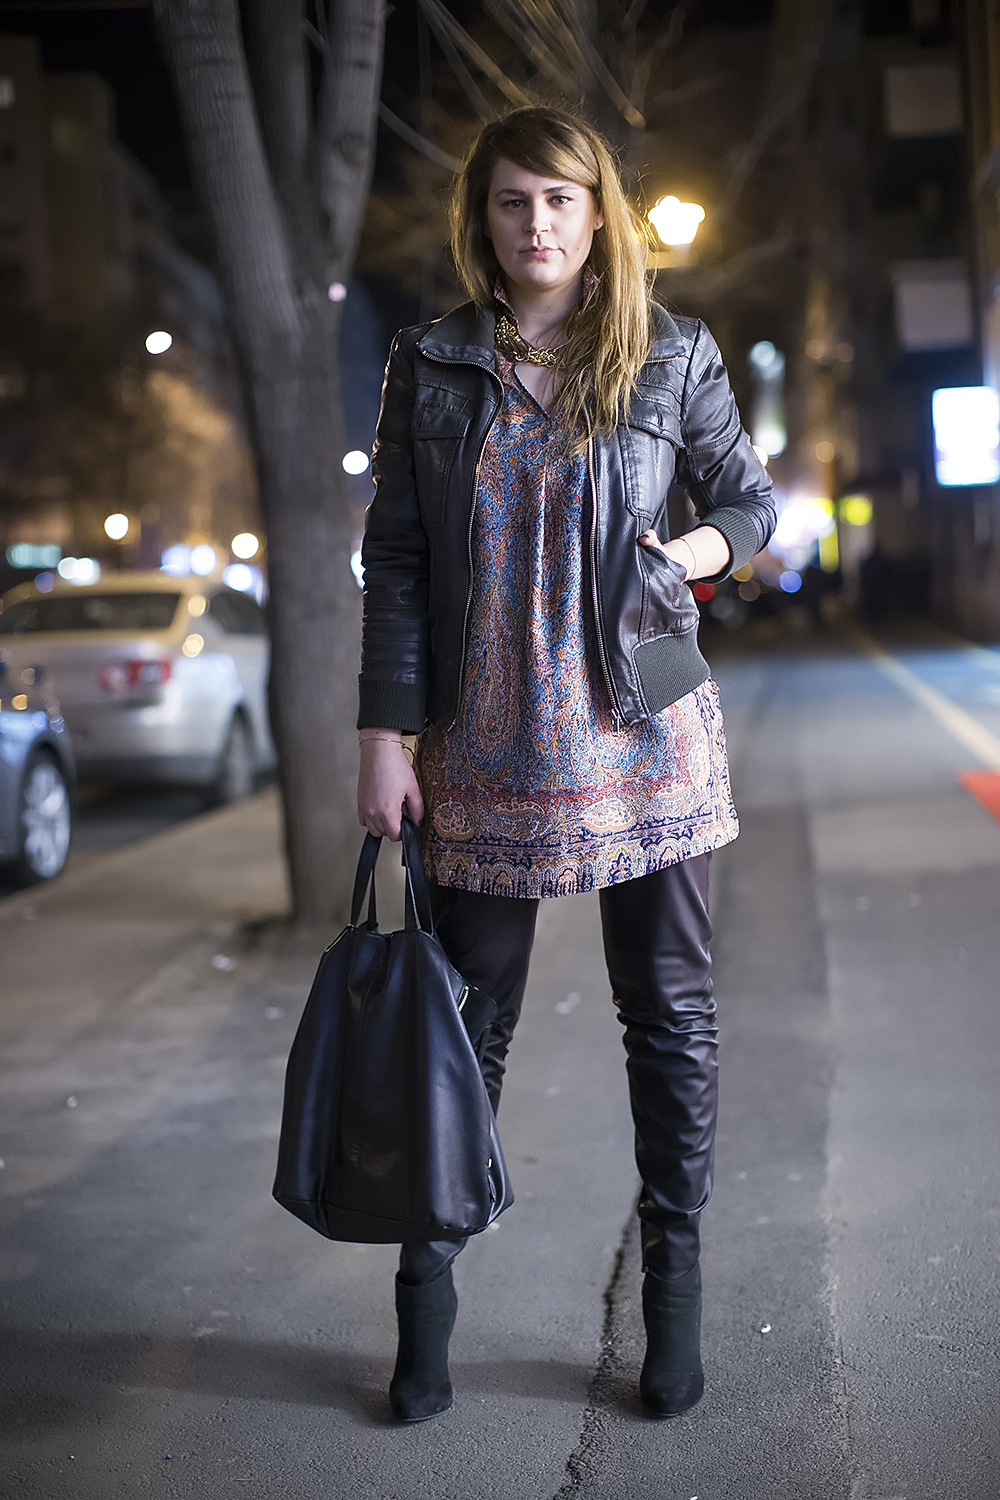 Spring Evening Street Style - Street Fashion Bucharest - Street Style Buchares